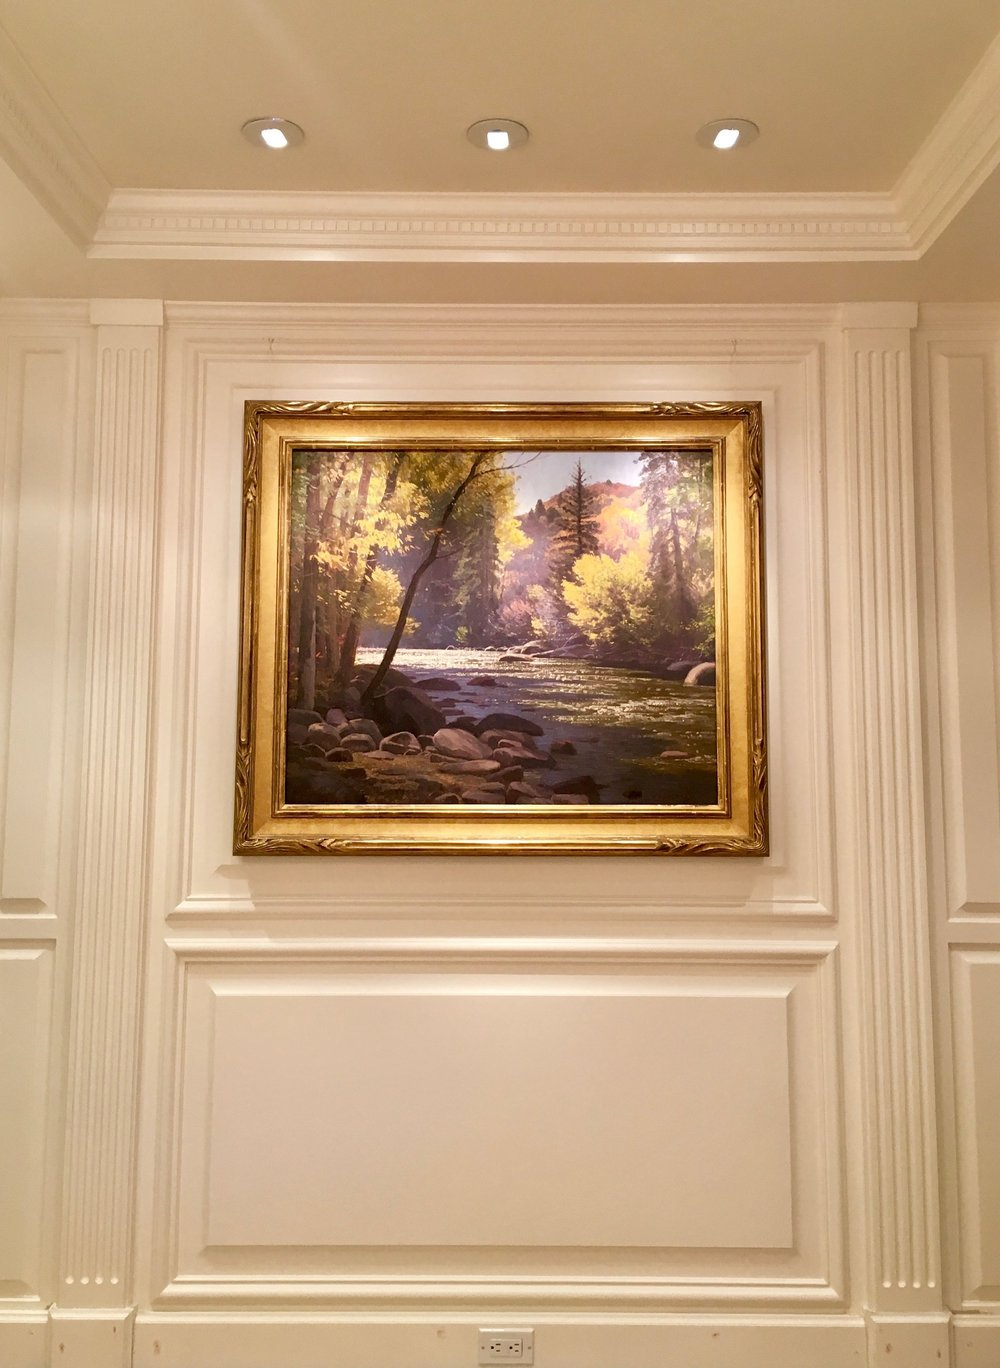 Wall Paneling for Artwork